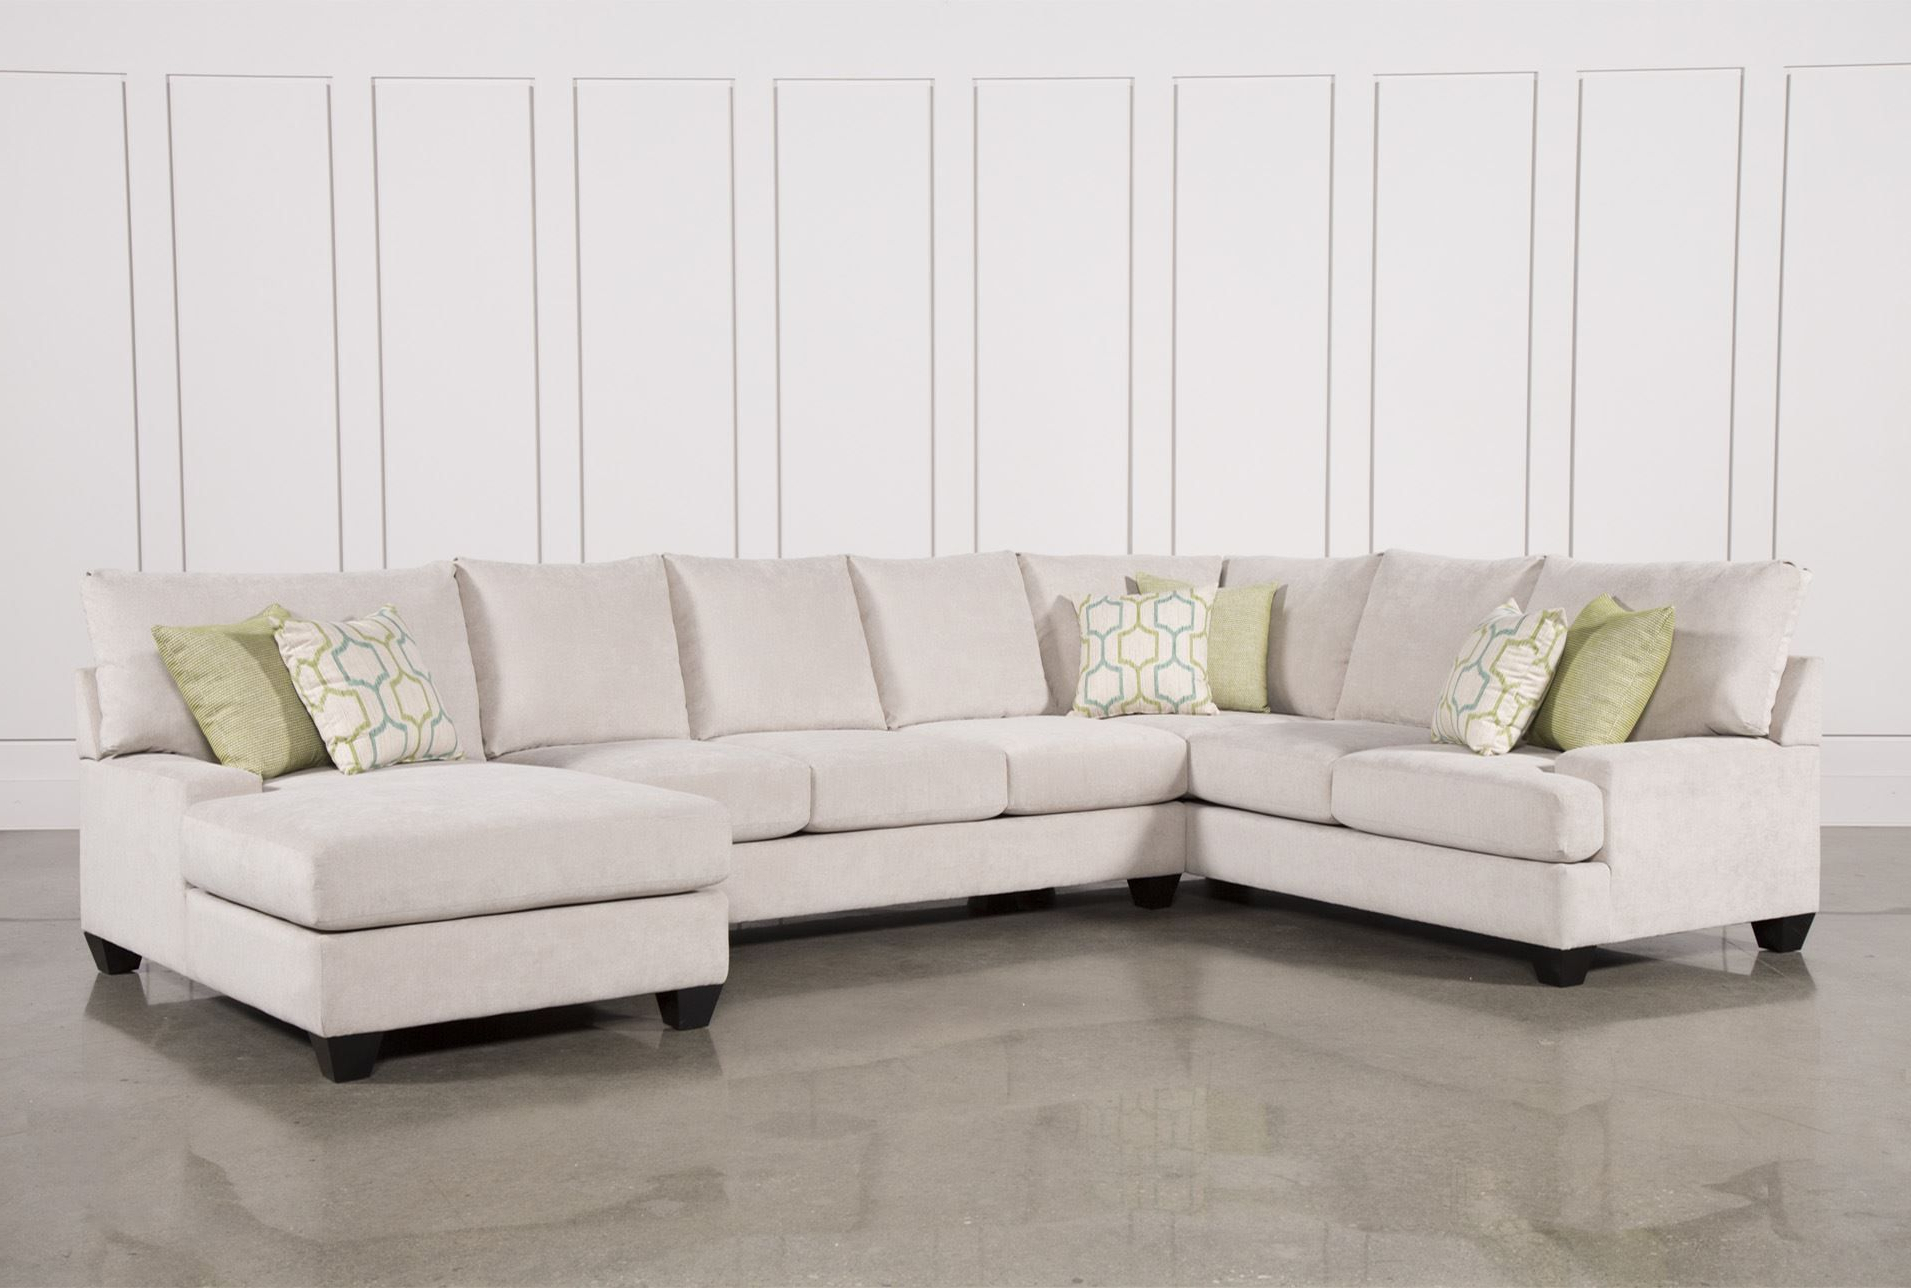 Turdur 2 Piece Sectionals With Raf Loveseat – Beideo With Regard To Turdur 2 Piece Sectionals With Laf Loveseat (View 7 of 15)